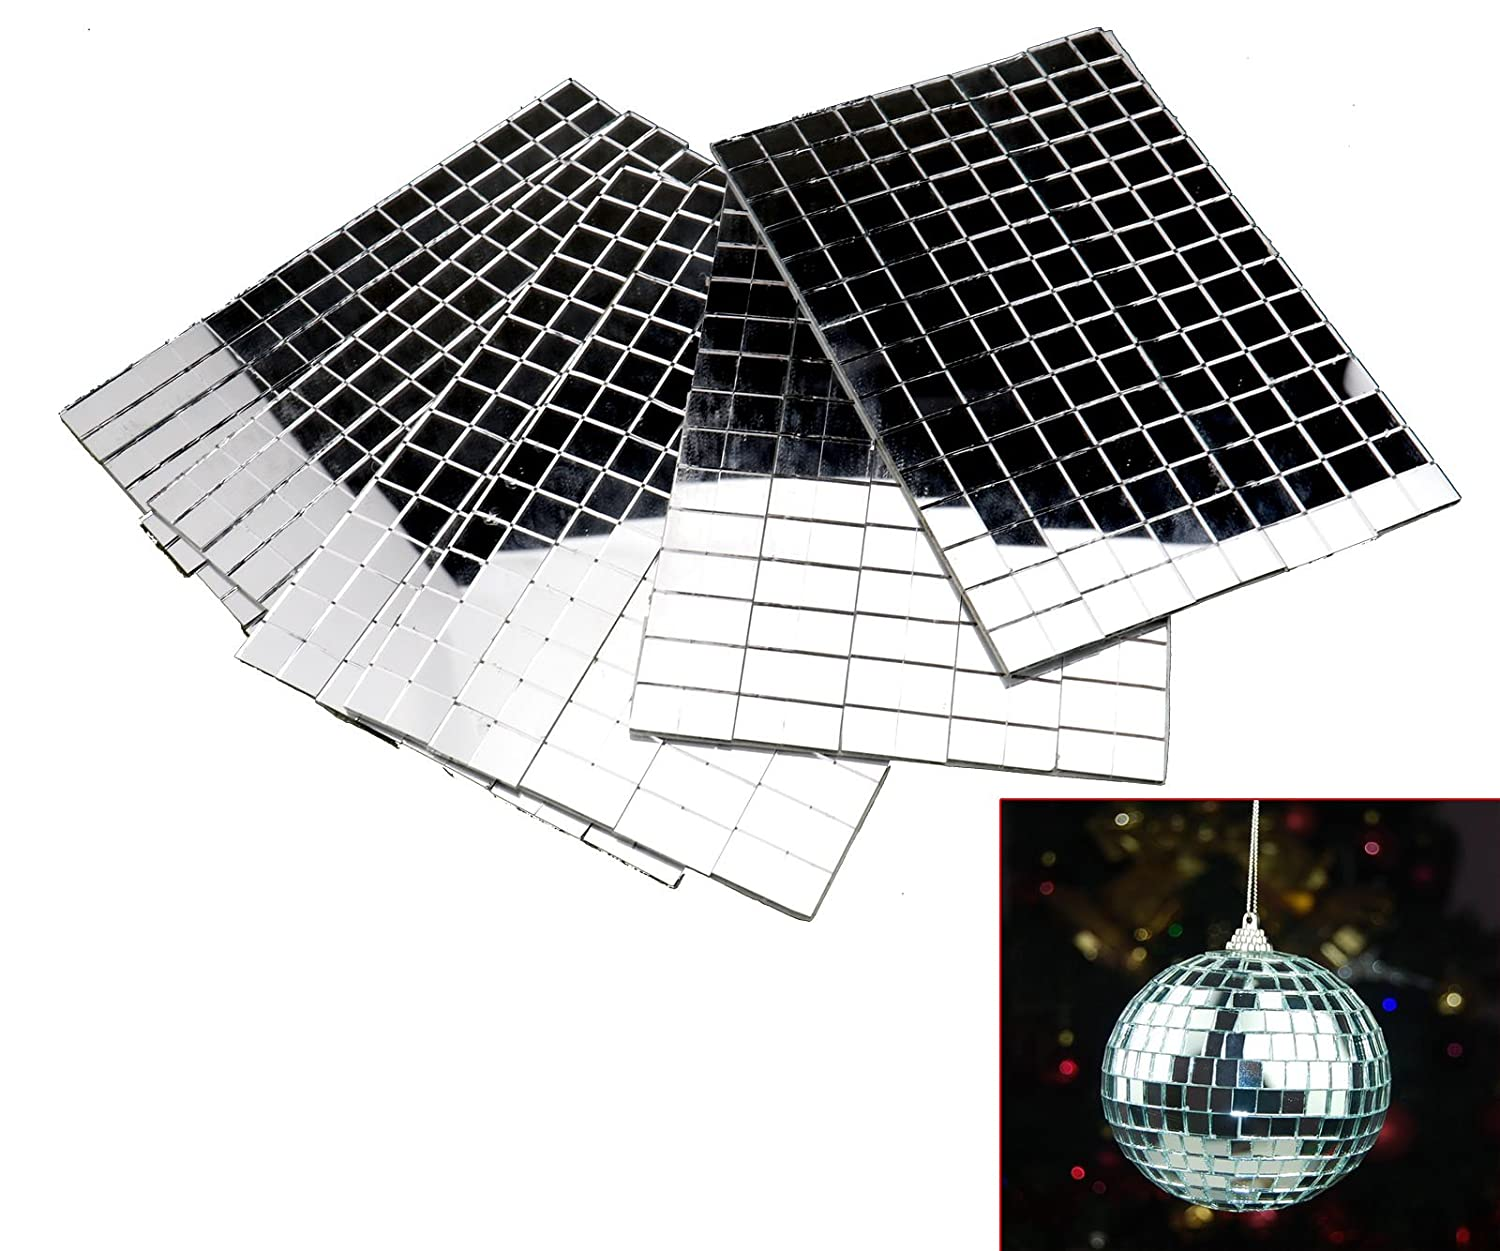 Self-Adhesive REAL Glass Craft Mini Square & Round Mirrors Mosaic Tiles 5 x 5mm Micro Trader